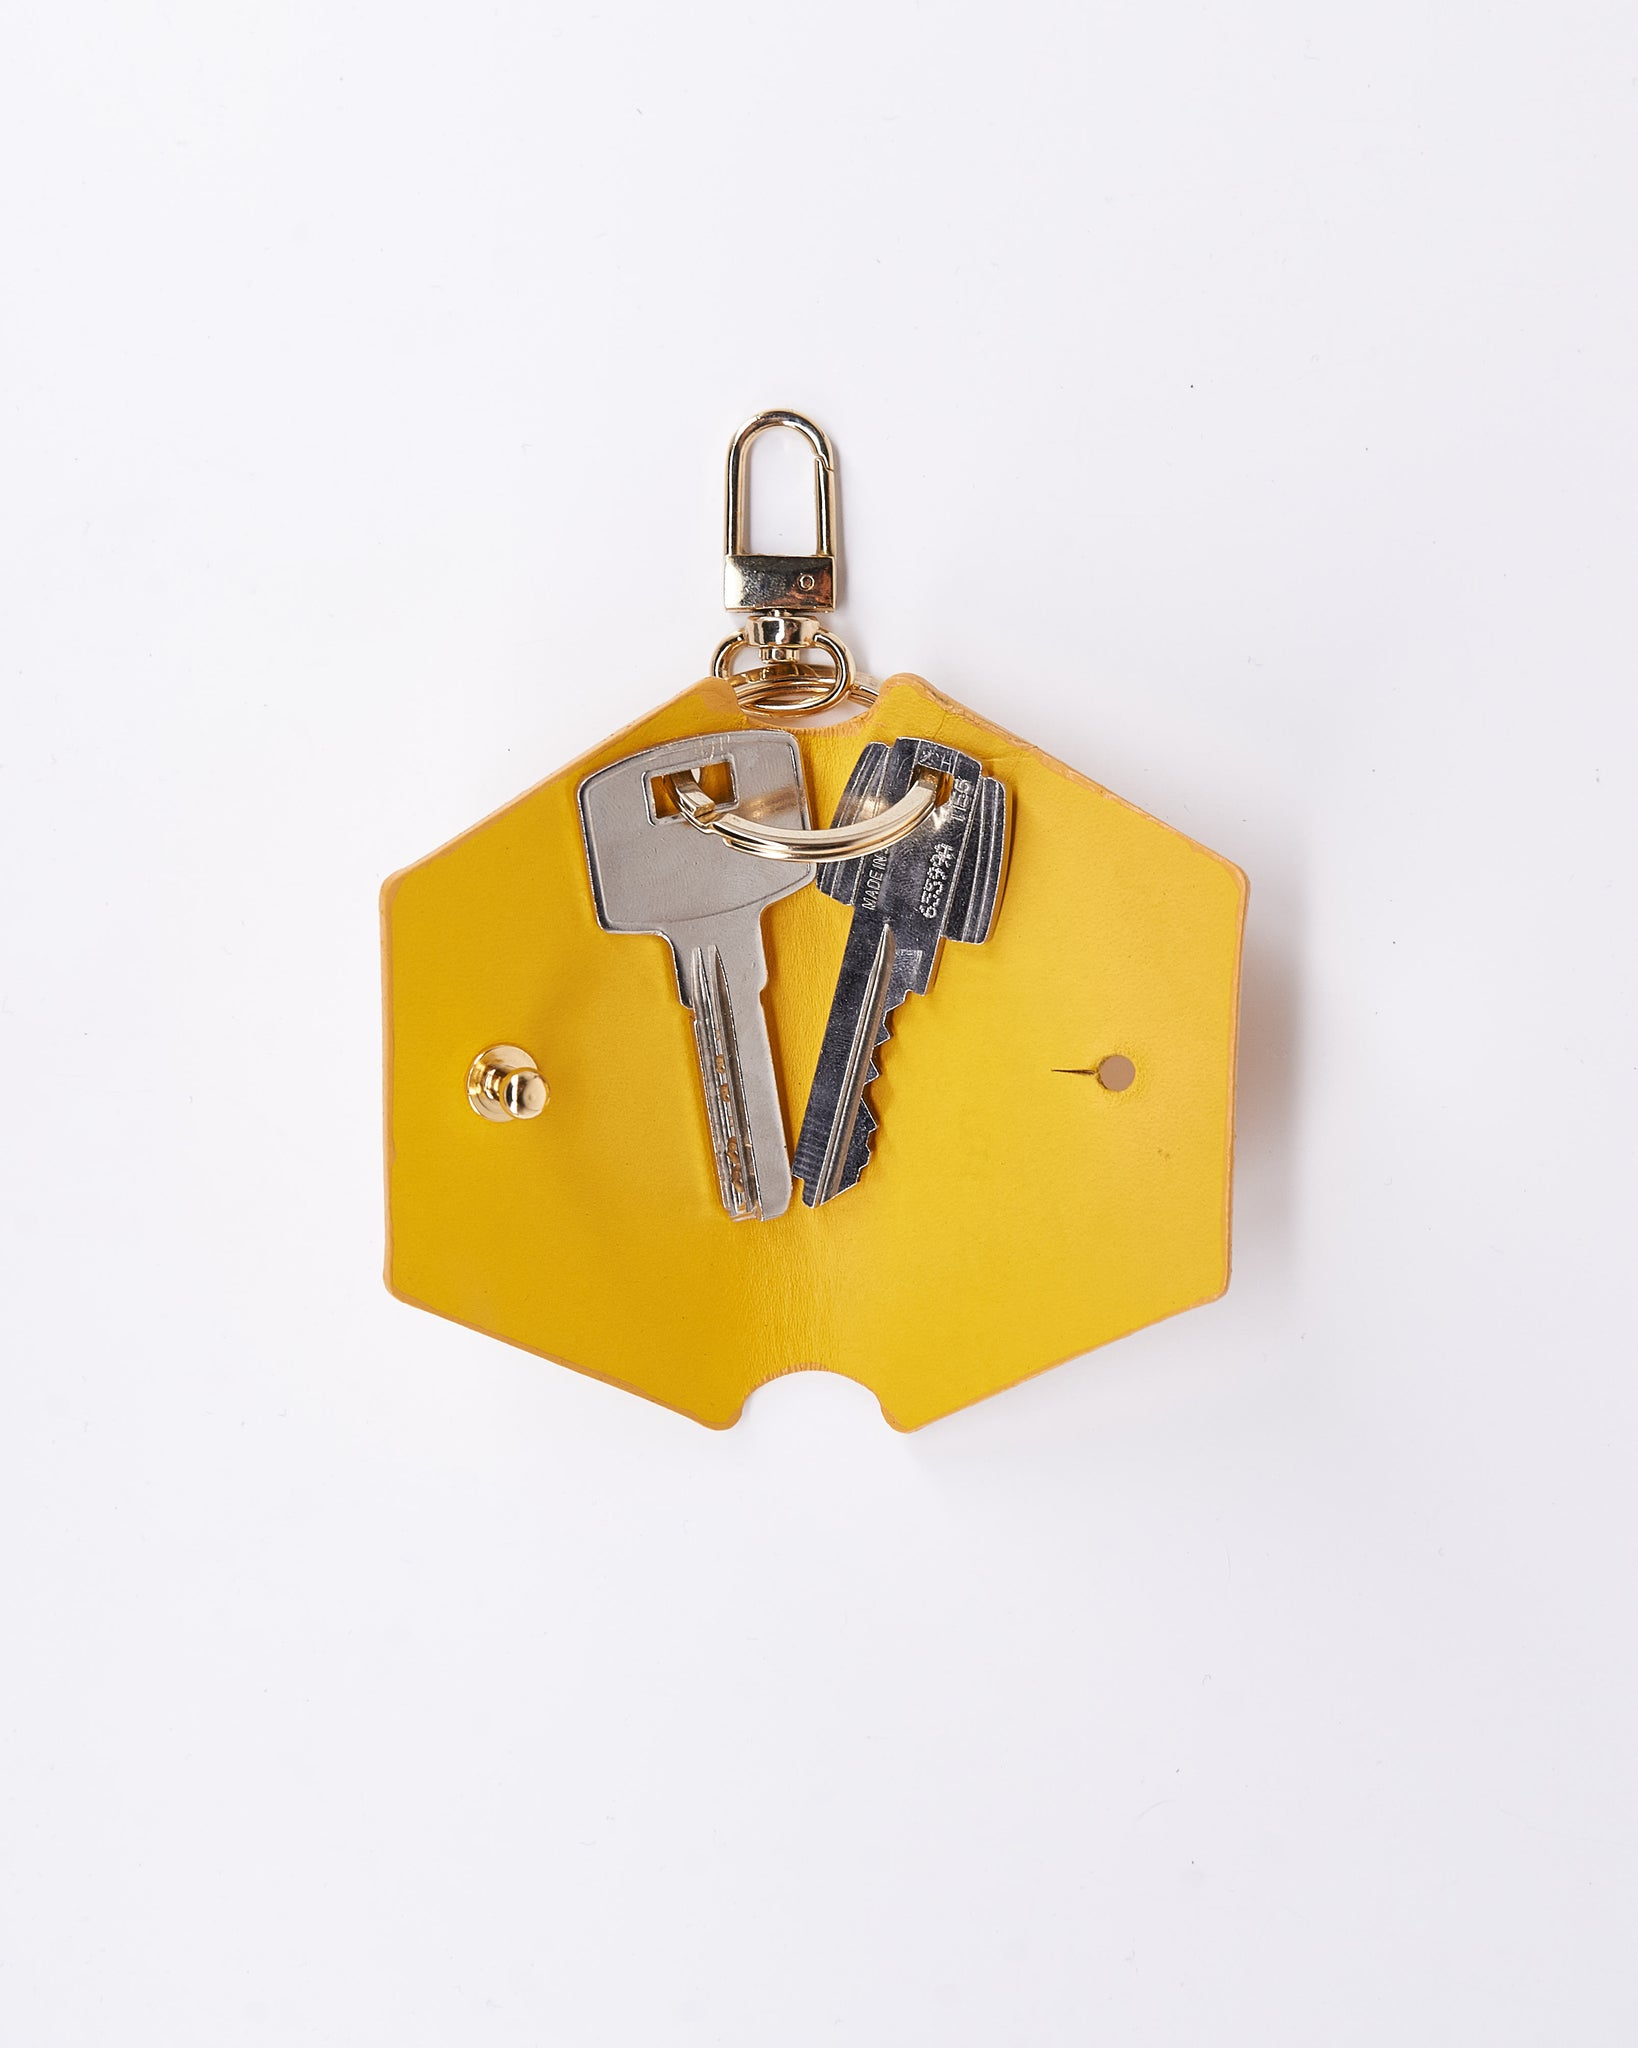 KeyWrap-Nuovum-Leather-Yellow-localdesigners-Barcelona-Nuovum-Handmade-Open